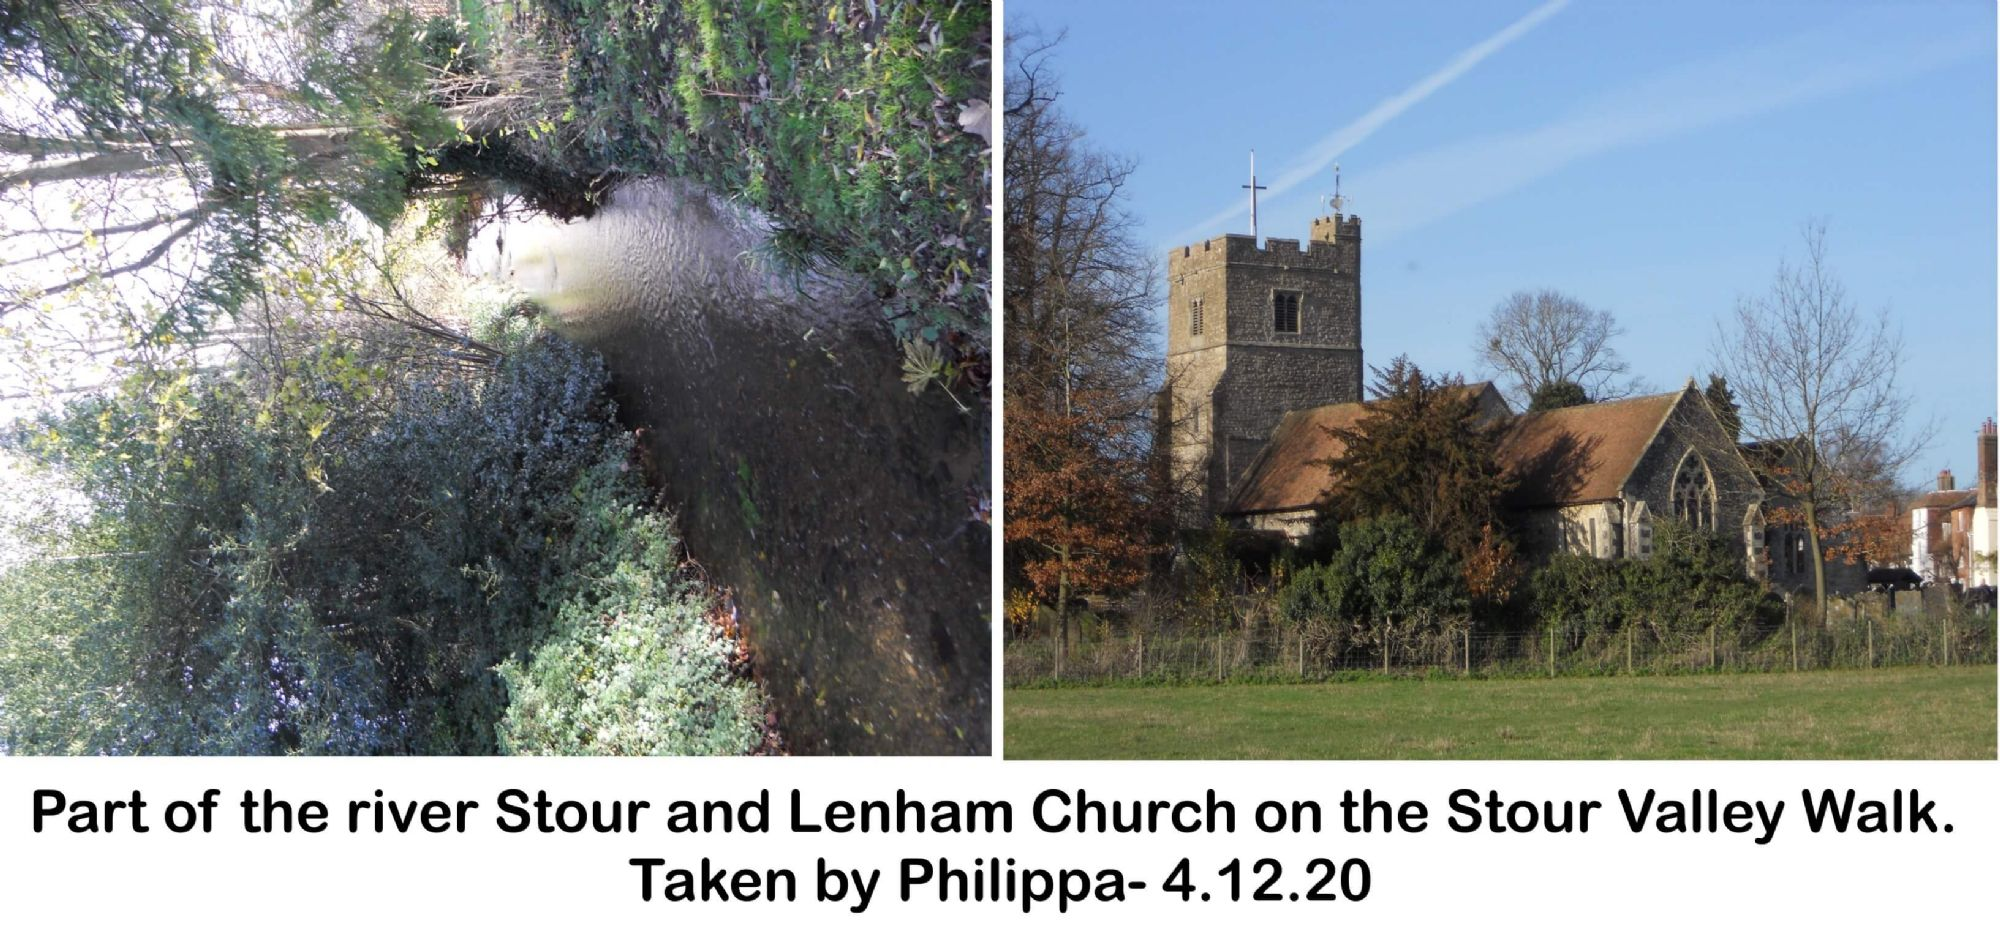 Part of the river Stour and Lenham Church on the Stour Valley Walk.